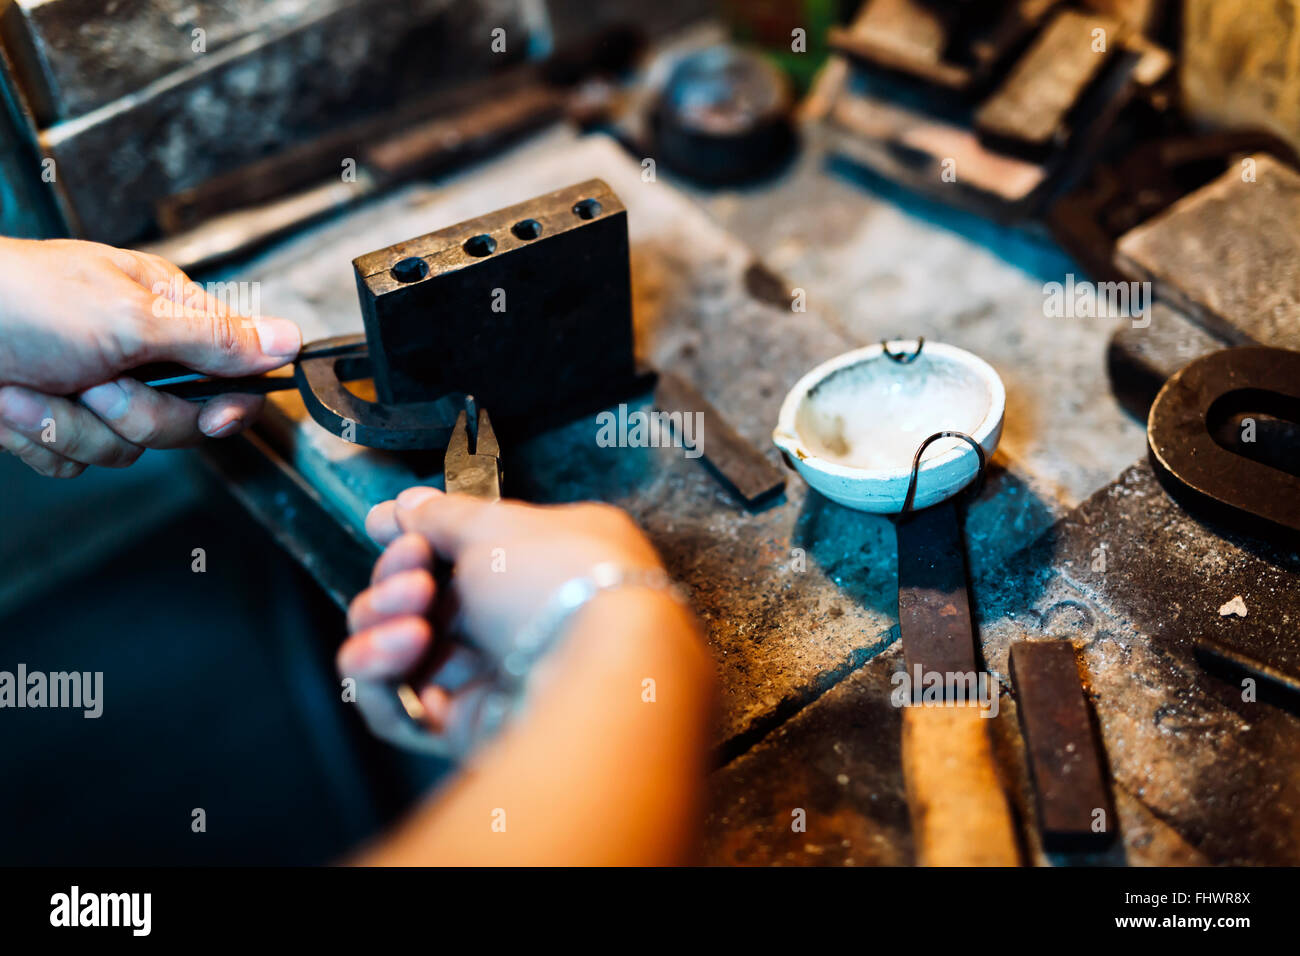 Goldsmith crafting jewels the traditional way Stock Photo